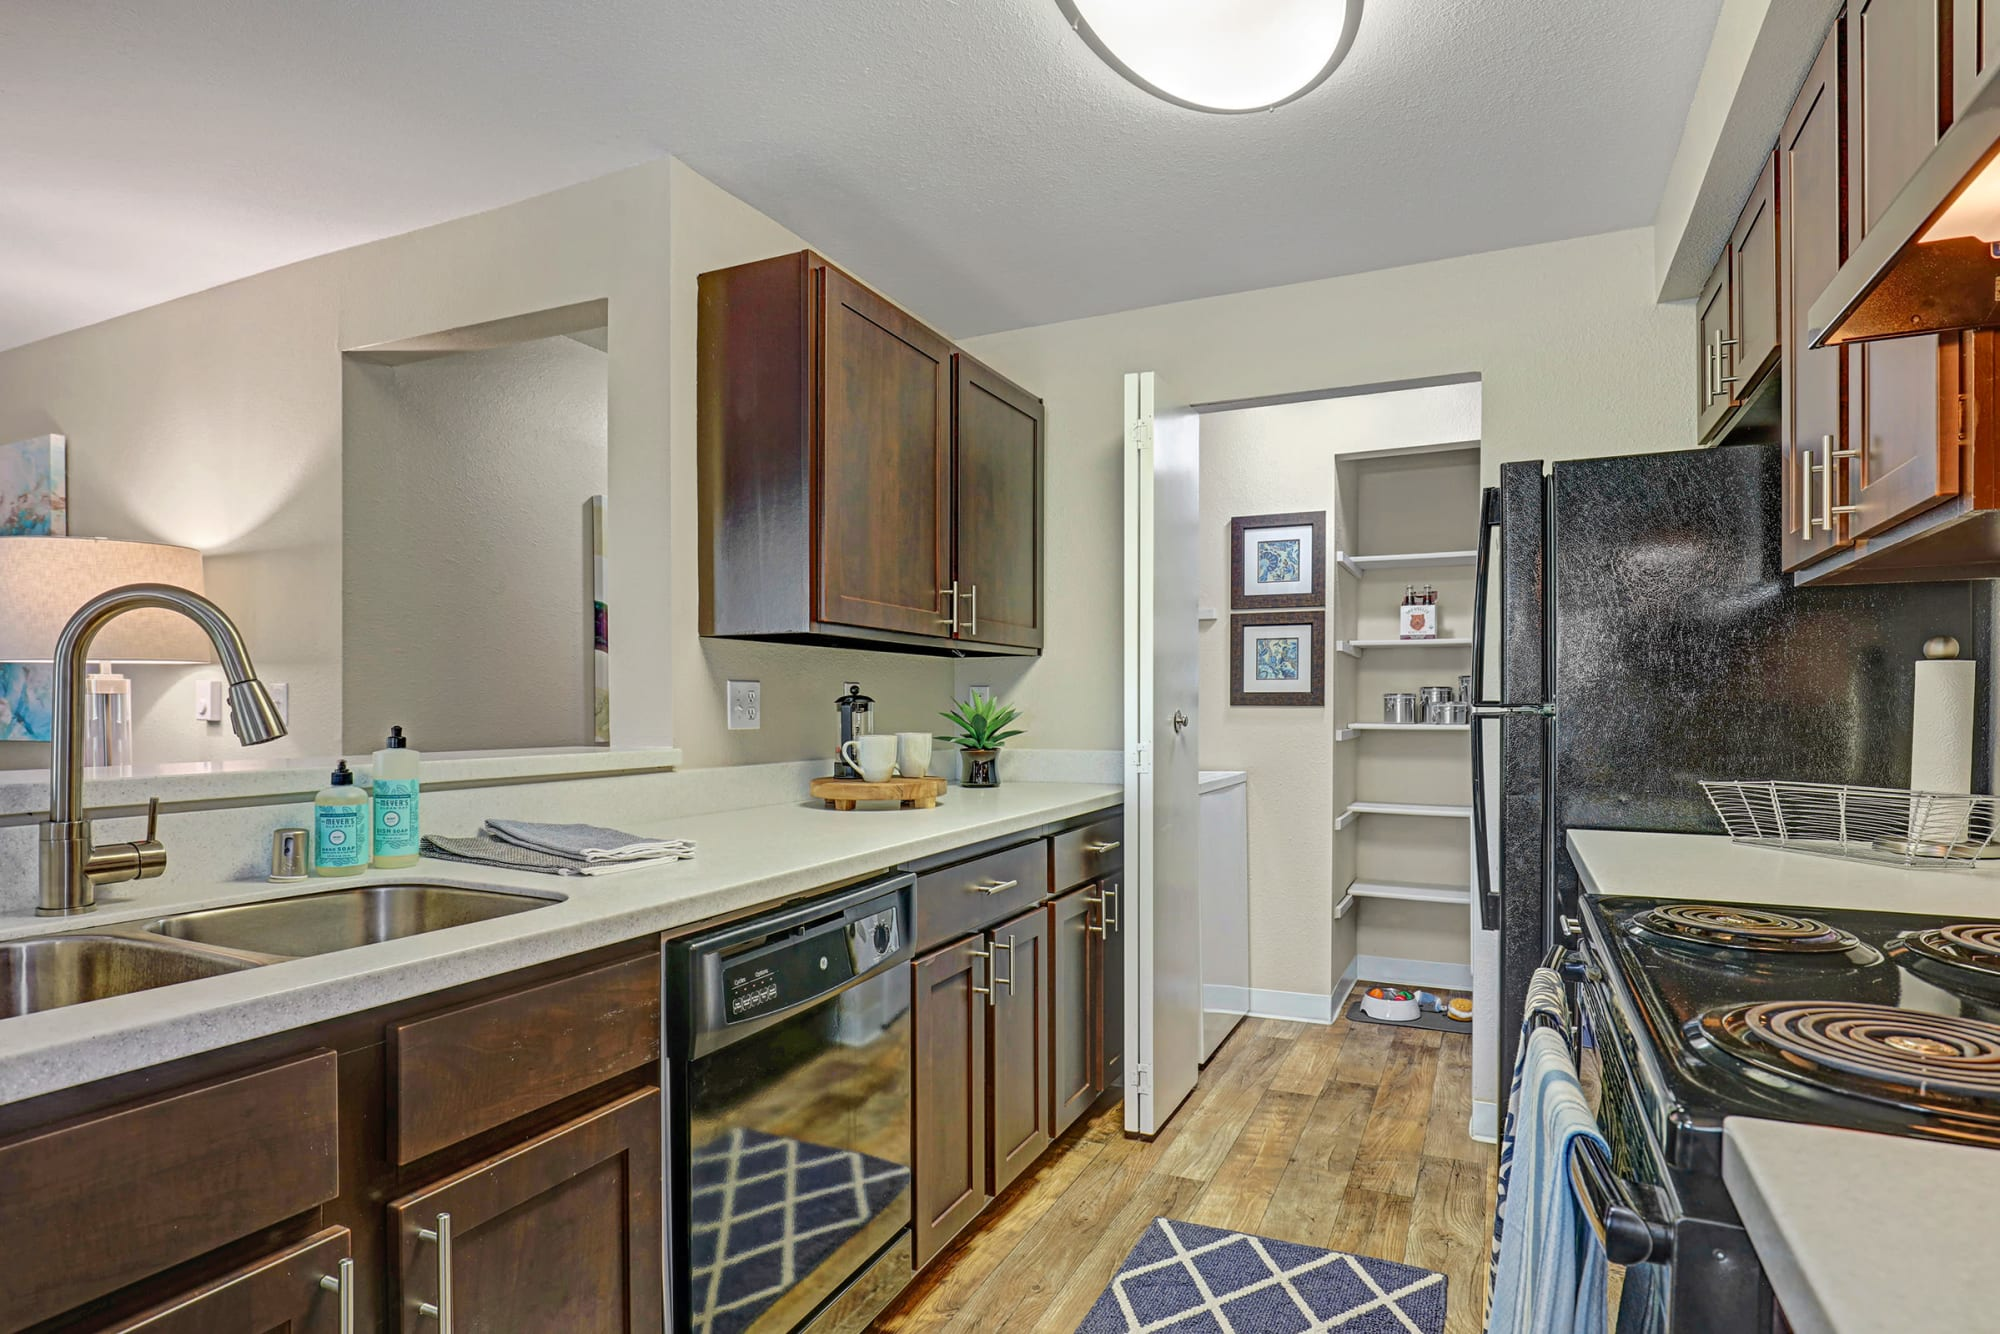 A kitchen with dark wood cabinets, black appliances and hardwood floors at Cascade Ridge in Silverdale, Washington